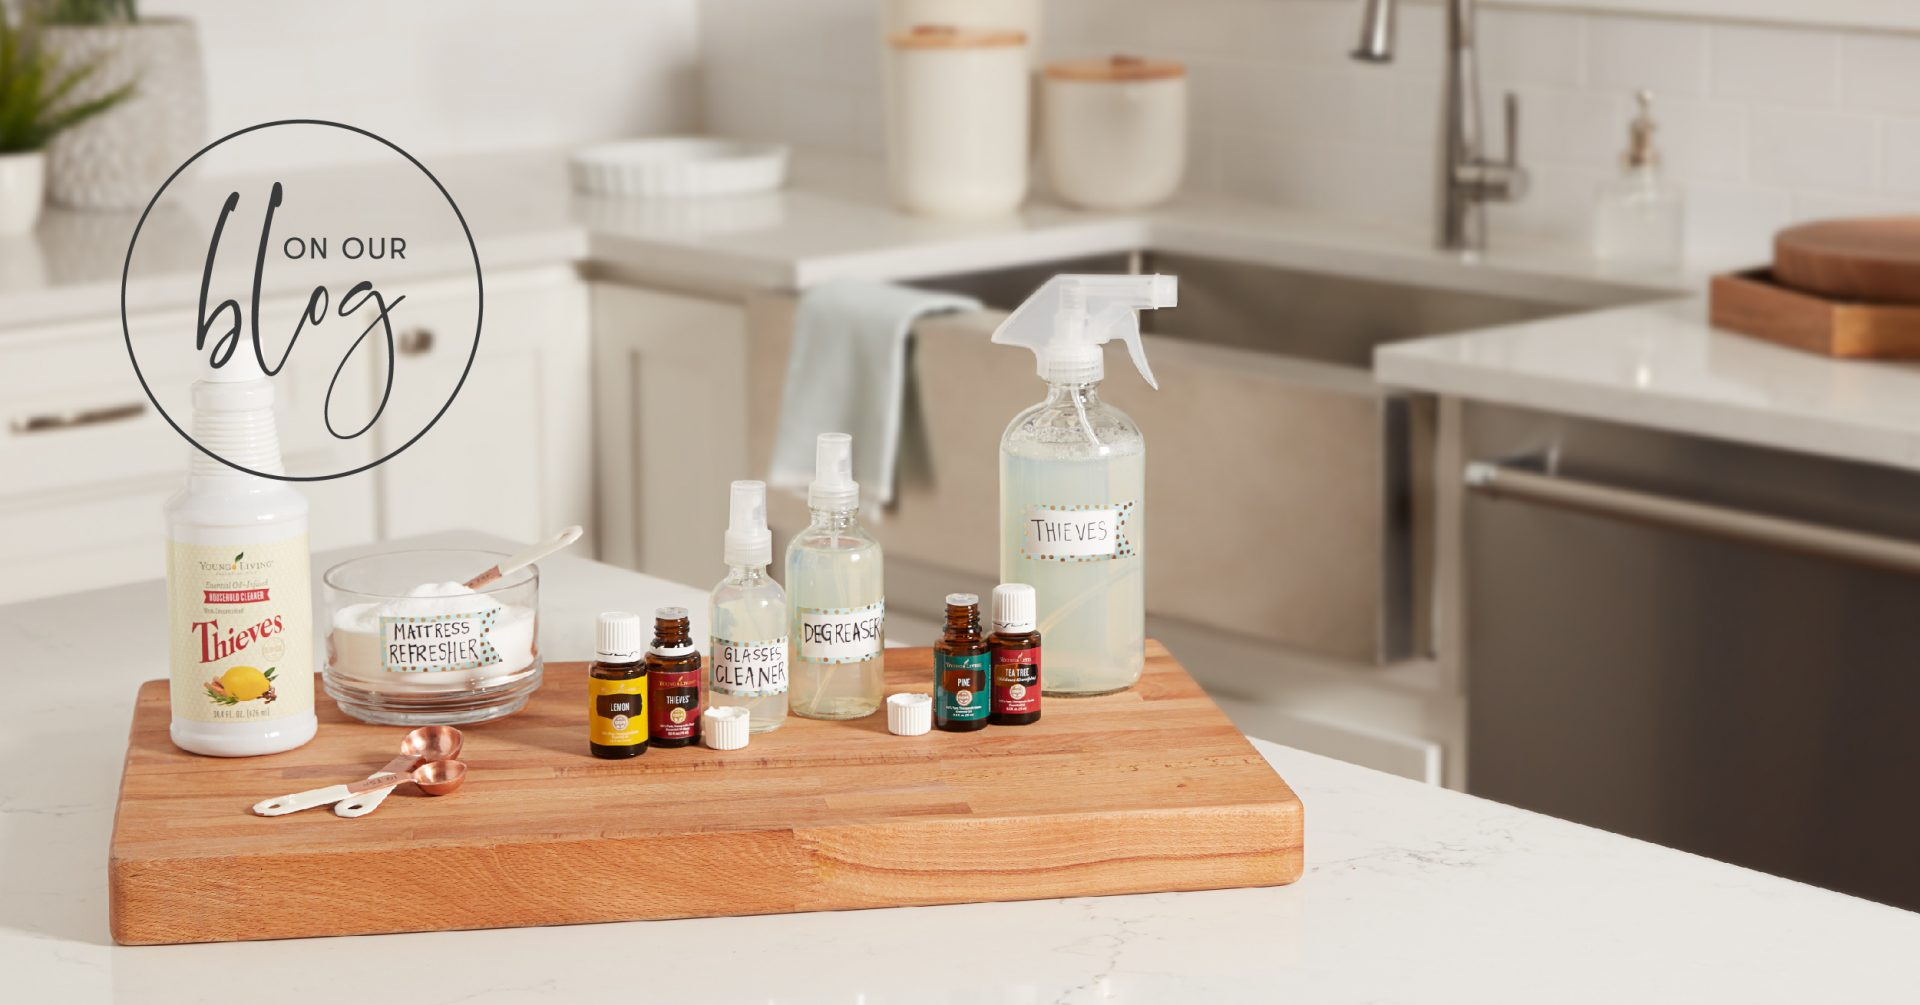 Thieves Household Cleaner Diy Tips Young Living Blog